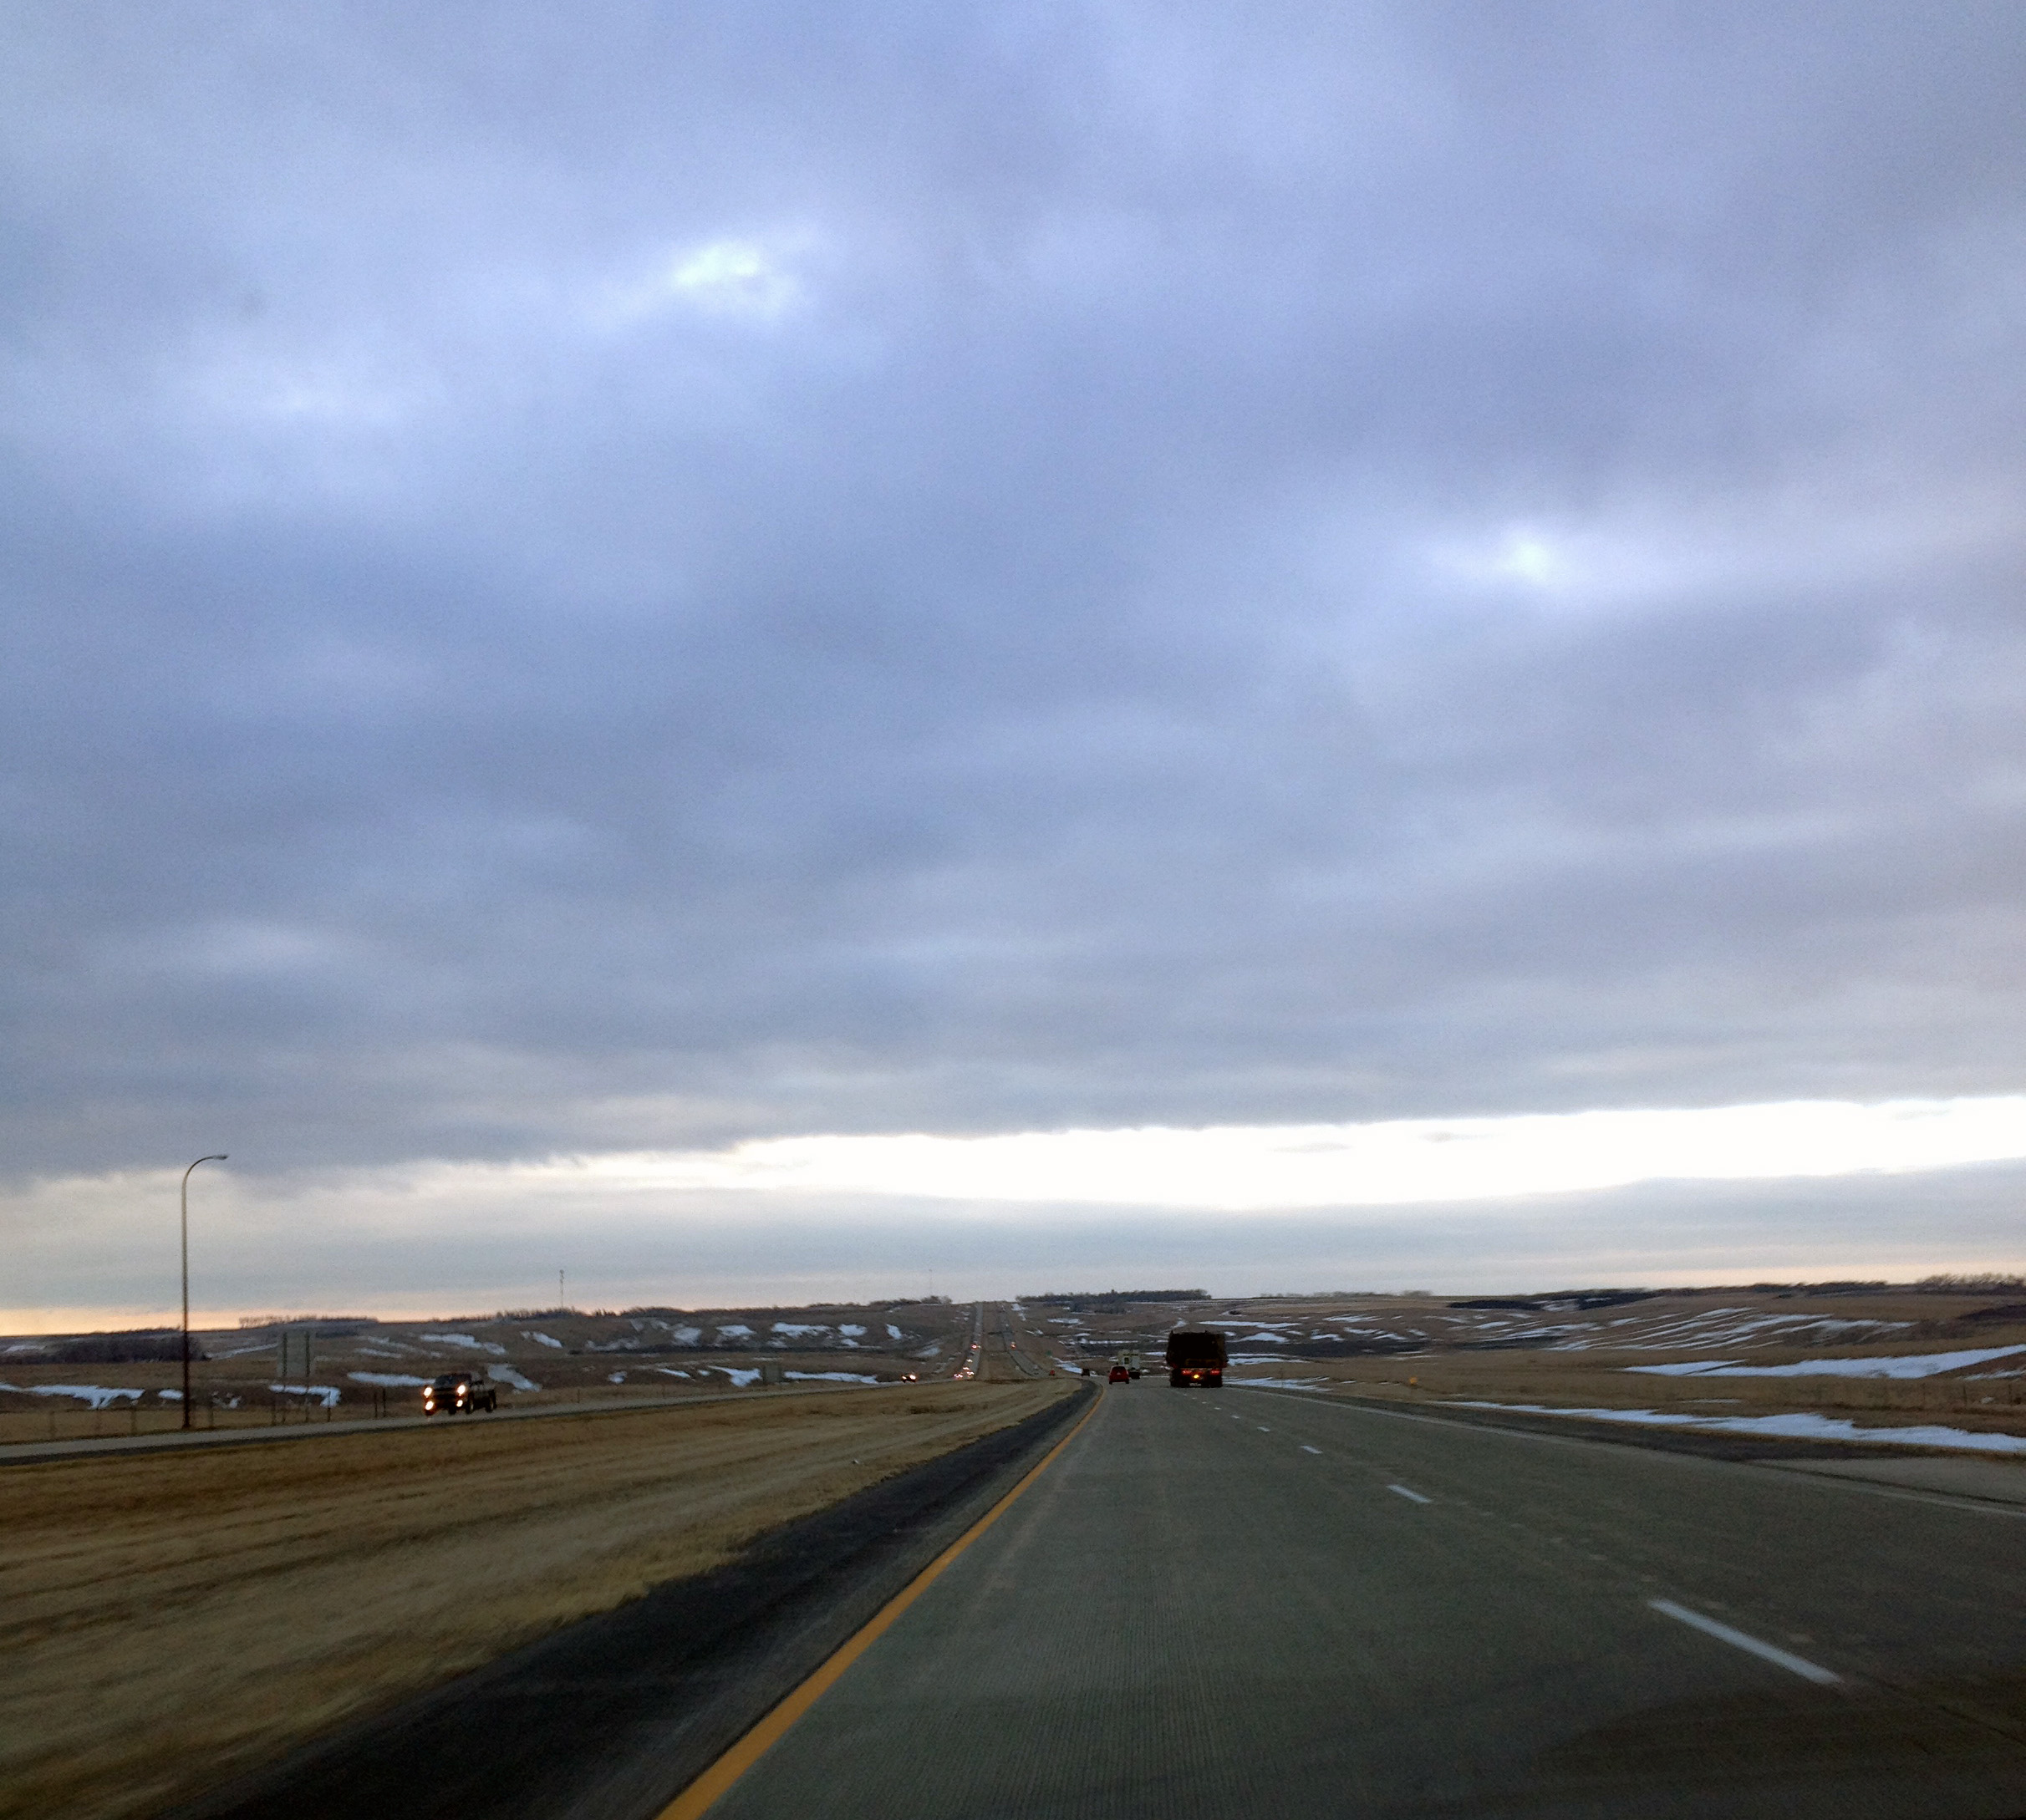 DAY #2. South Dakota. Heading south in the early morning on I-29.